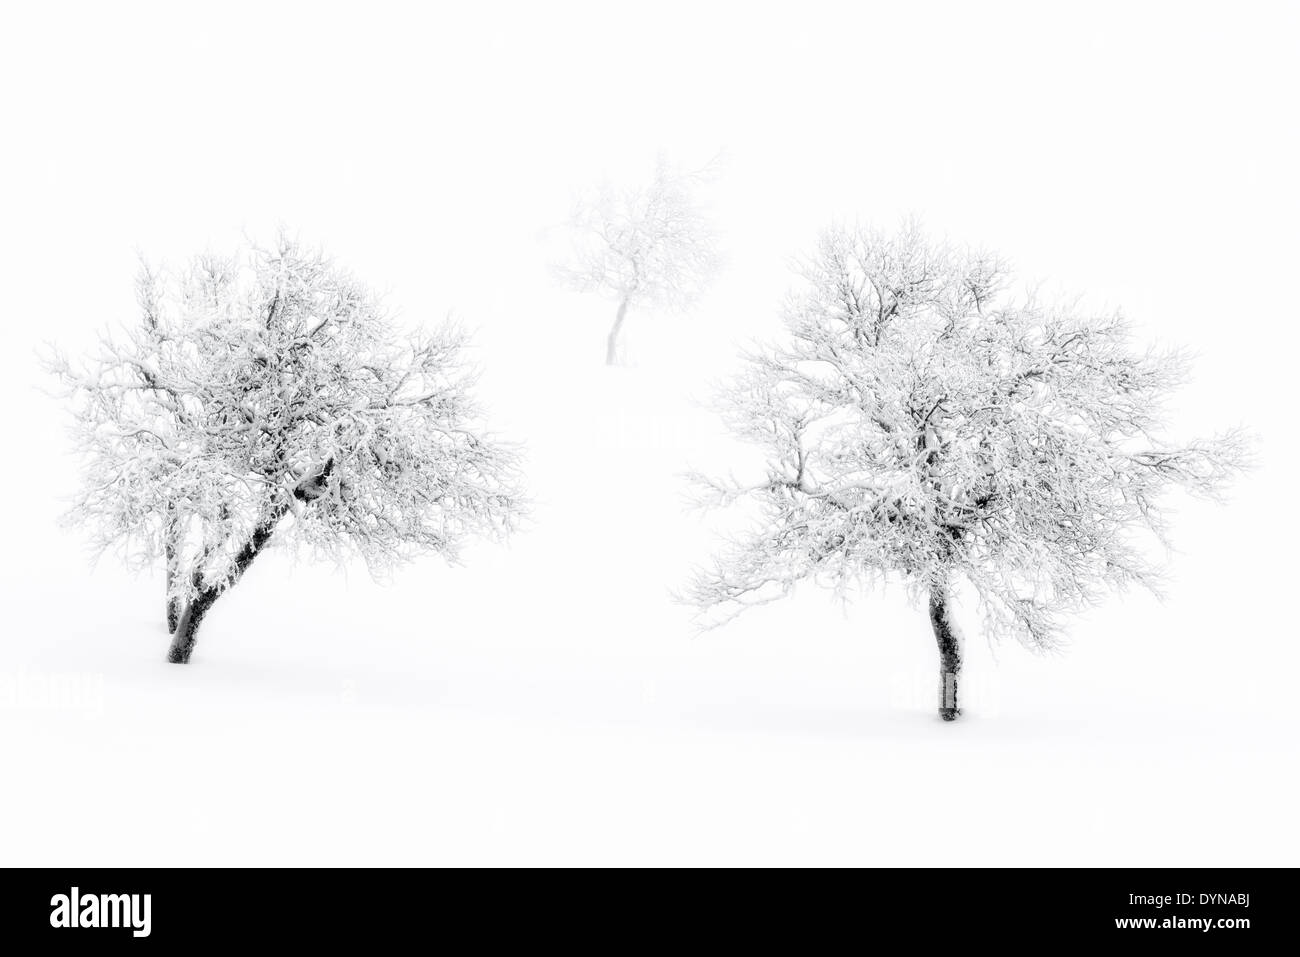 Snowcovered bare trees in winter - Stock Image